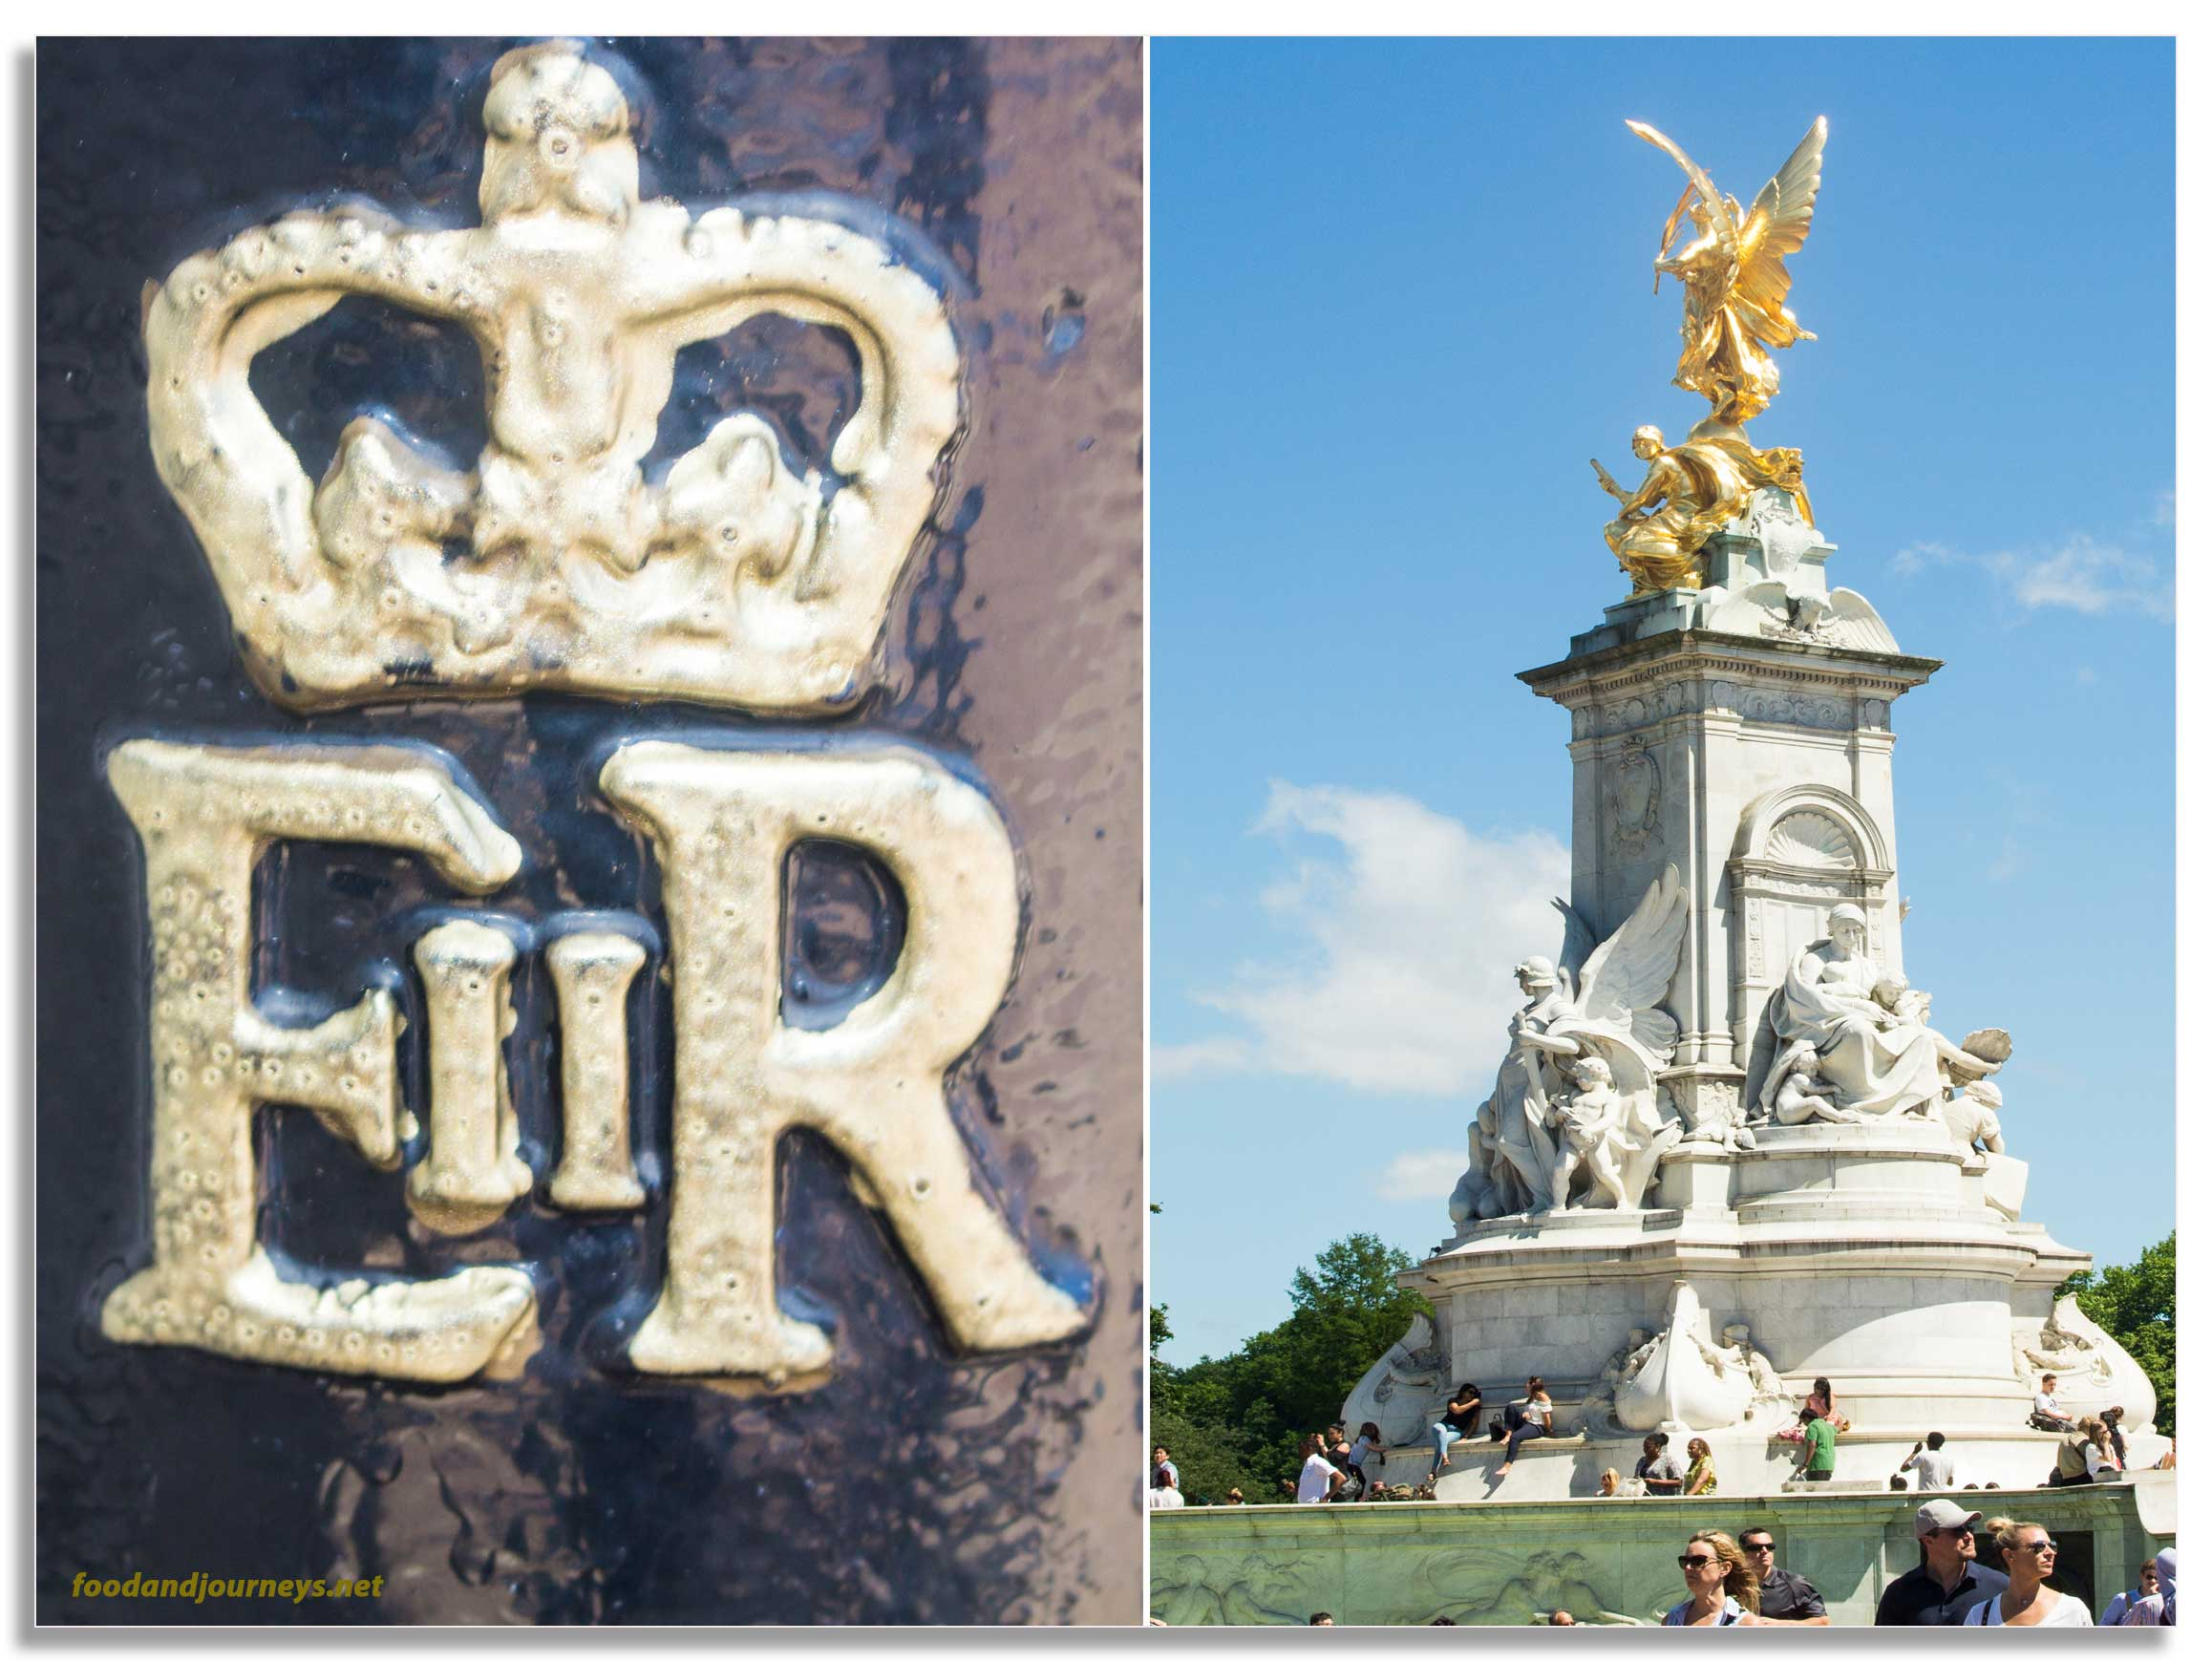 EIIR Cypher Victoria Memorial Buckingham Palace London|foodandjourneys.net